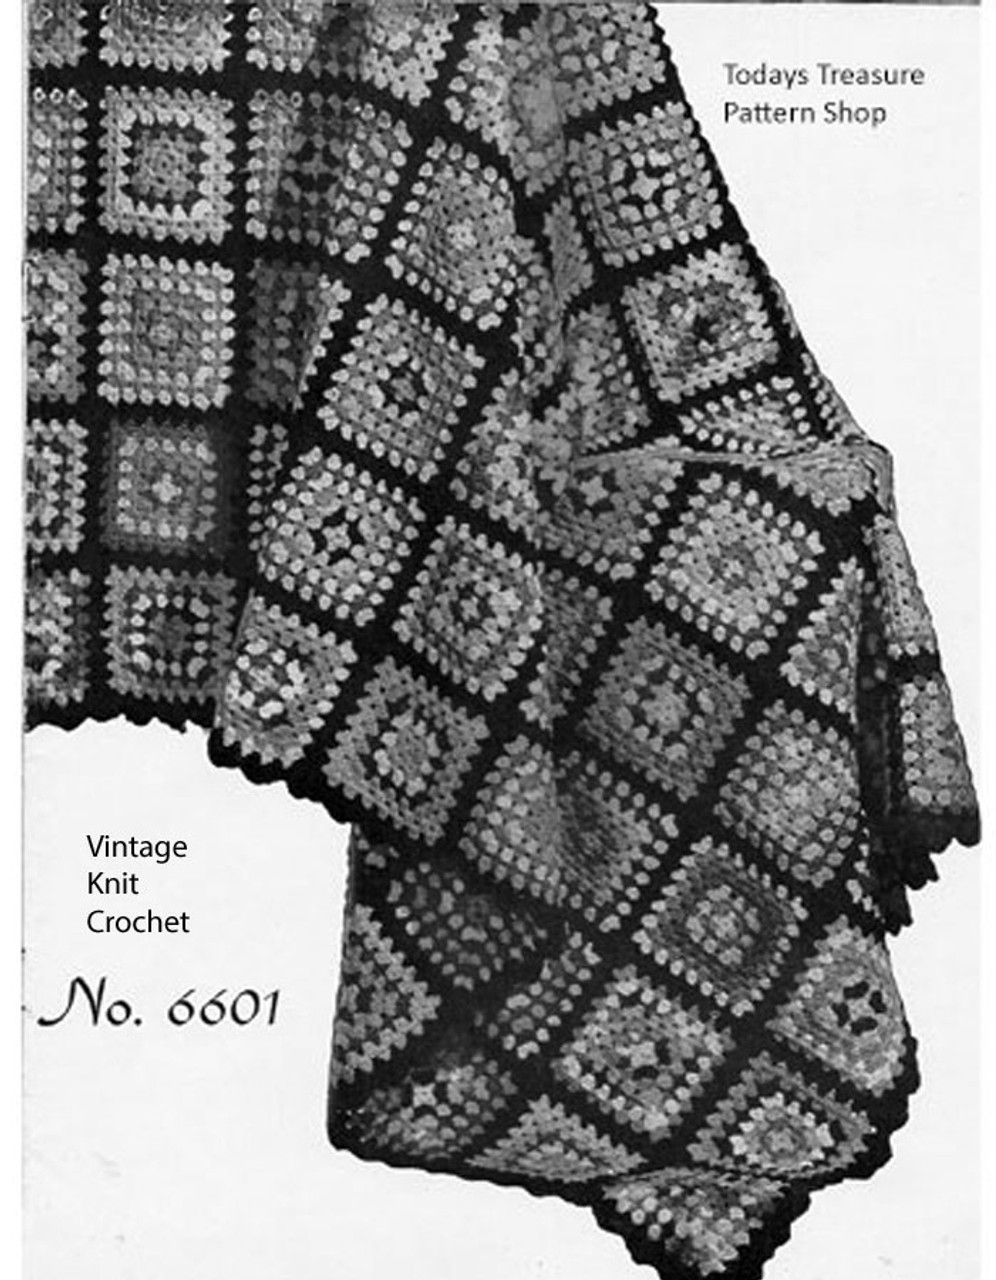 Vintage Crochet Granny Square Afghan Pattern No 6601,How To Get Rid Of Black Ants In Car